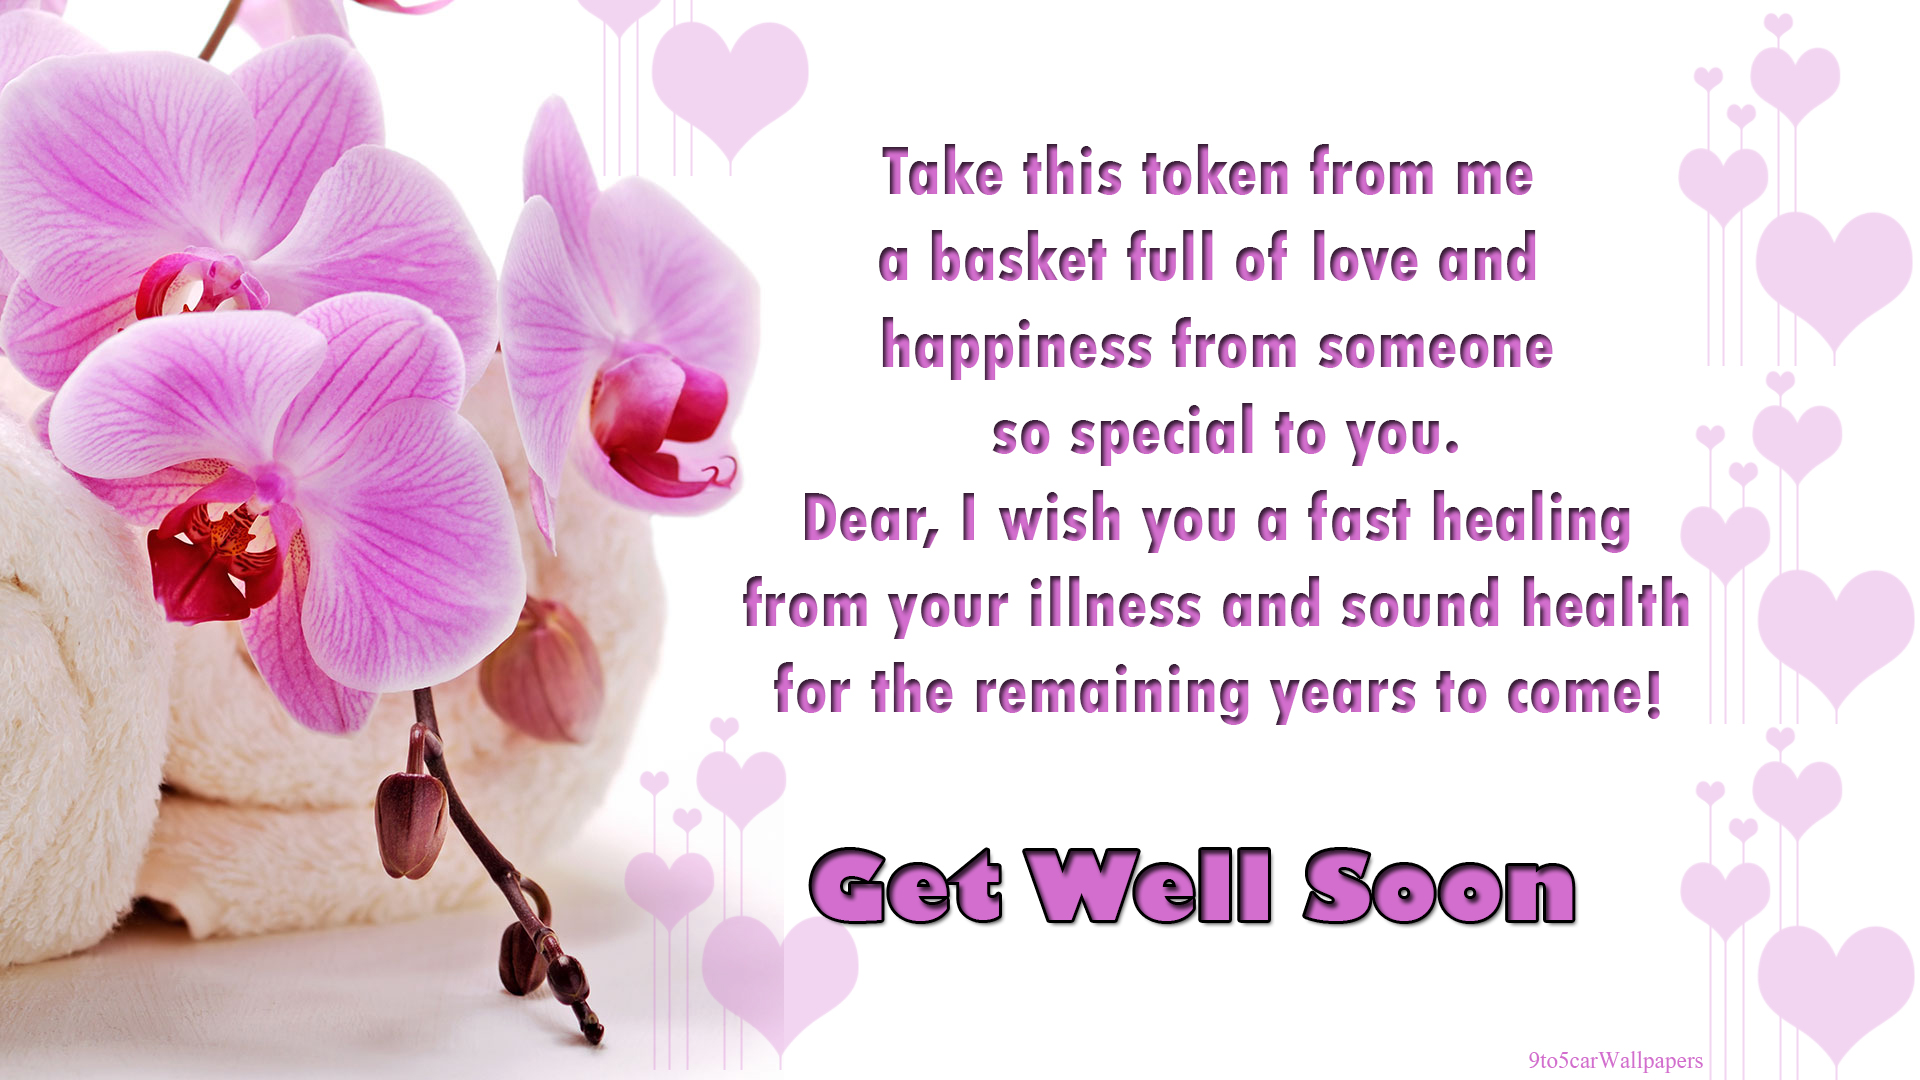 Multipurpose Get Well Wishes Quotes 2018 Get Well Wishes Quotes Get Well Wishes Ny Cards inspiration Get Well Wishes